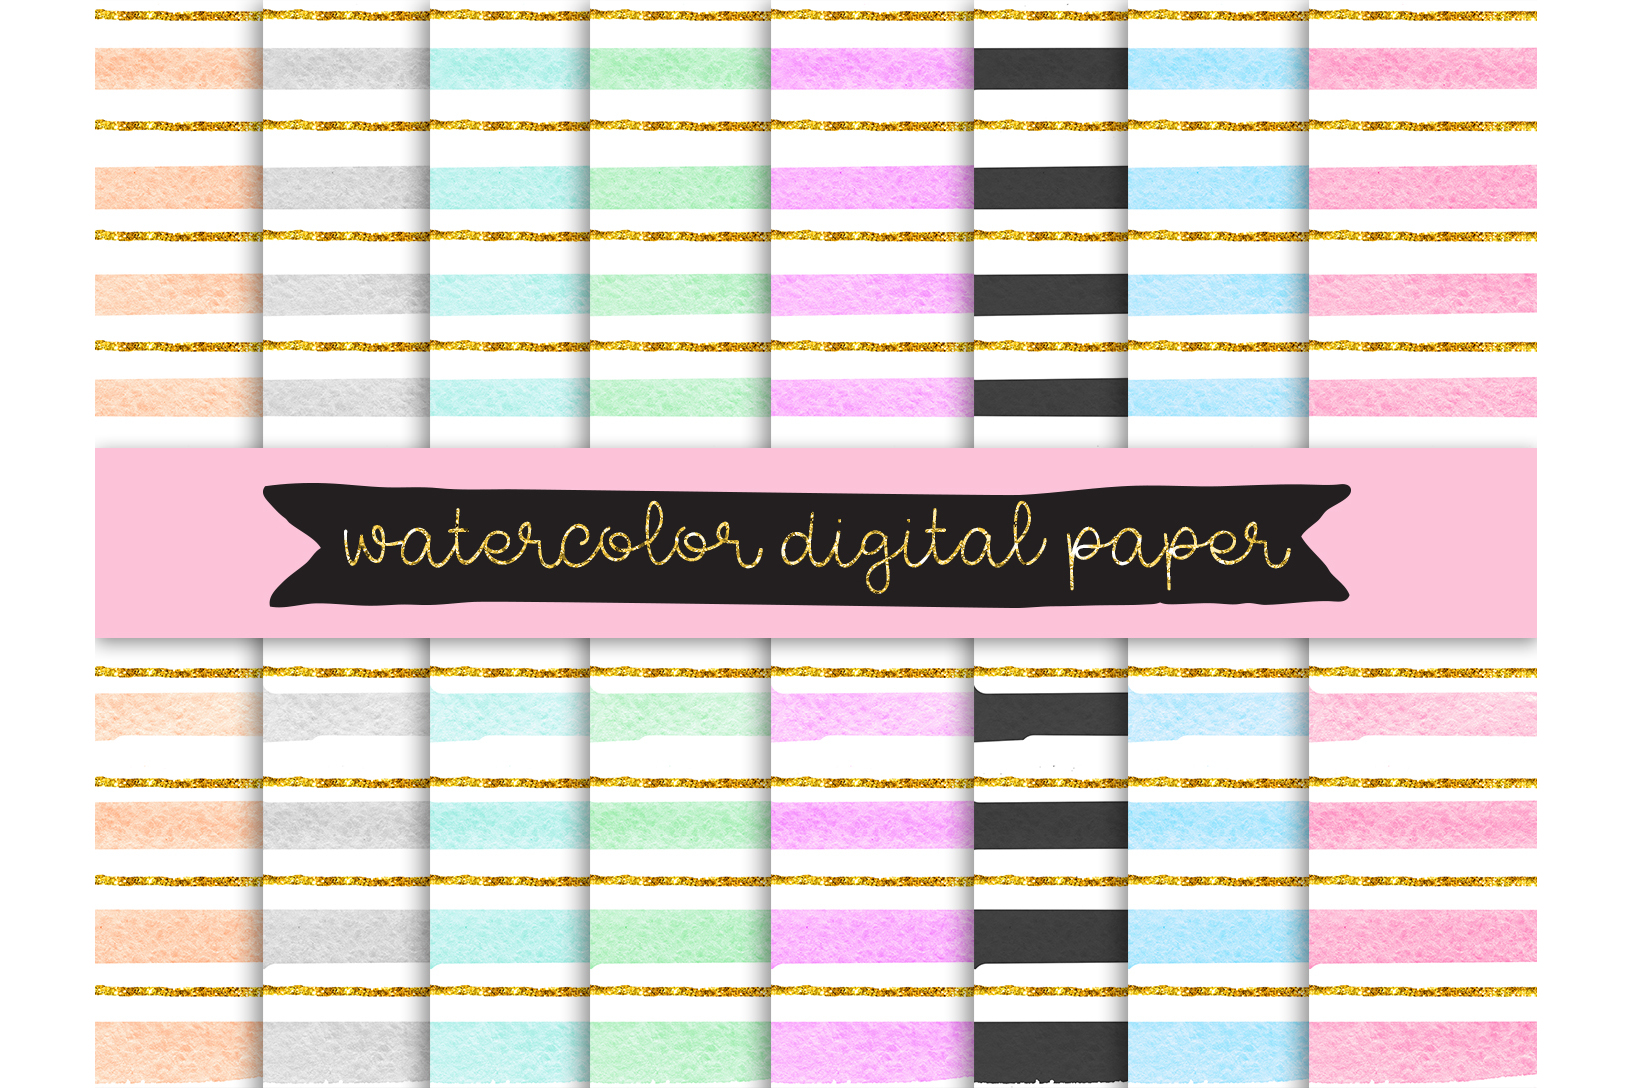 watercolor digital paper, Gold Glitter Confetti Papers, strips Digital Paper, Pastel Color digital paper, hand painted background, Scrapbook example image 1